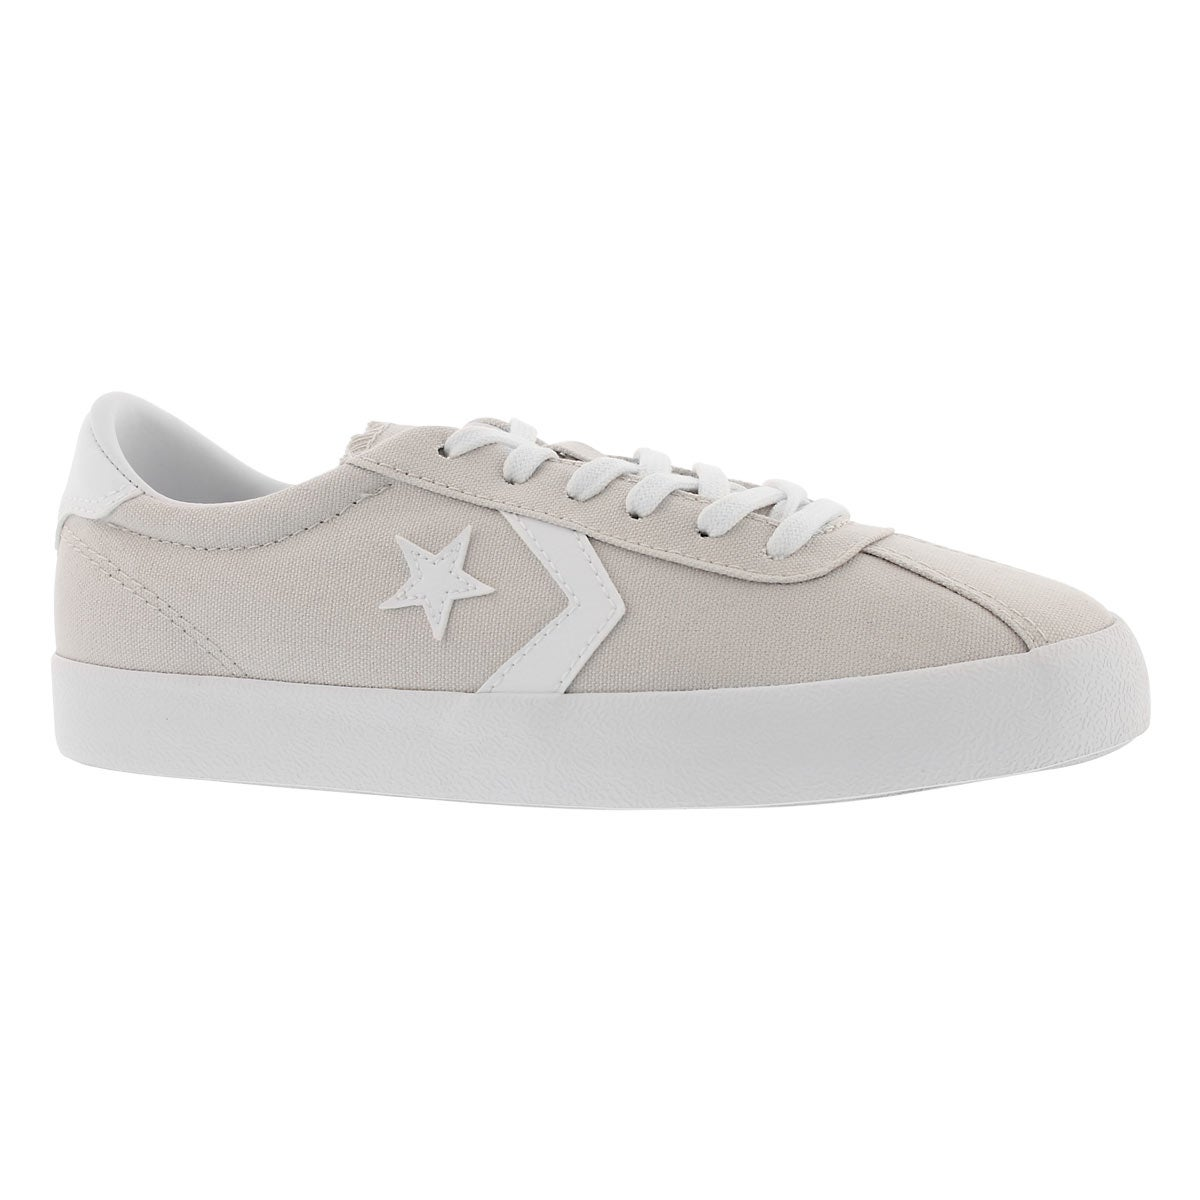 Women's BREAKPOINTpale putty fashion sneakers